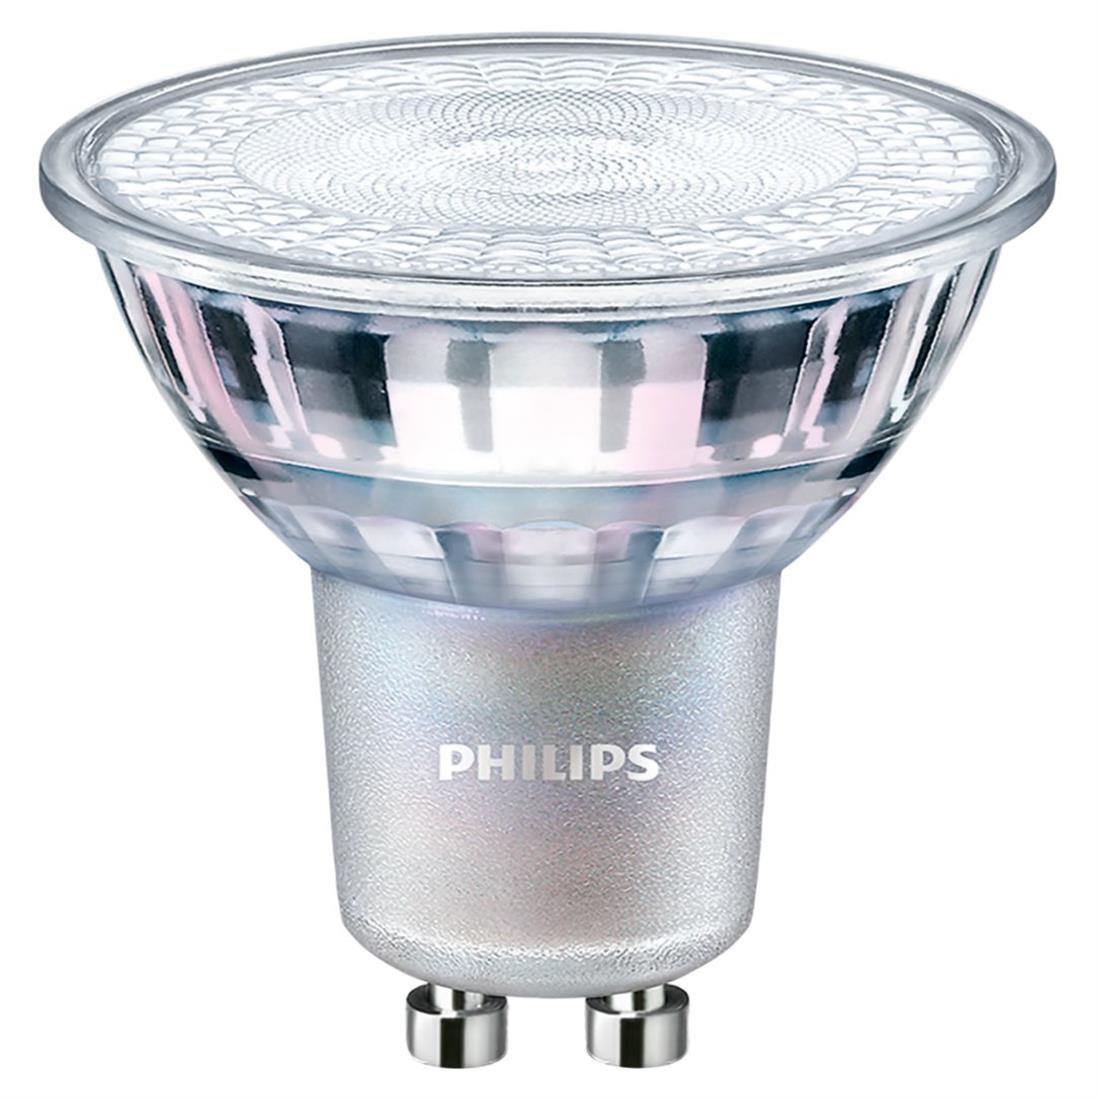 PHILIPS GU10 led lamp dimbaar 4.9W-50W warmwit 2700 kelvin 36gr CRI90 2850214759